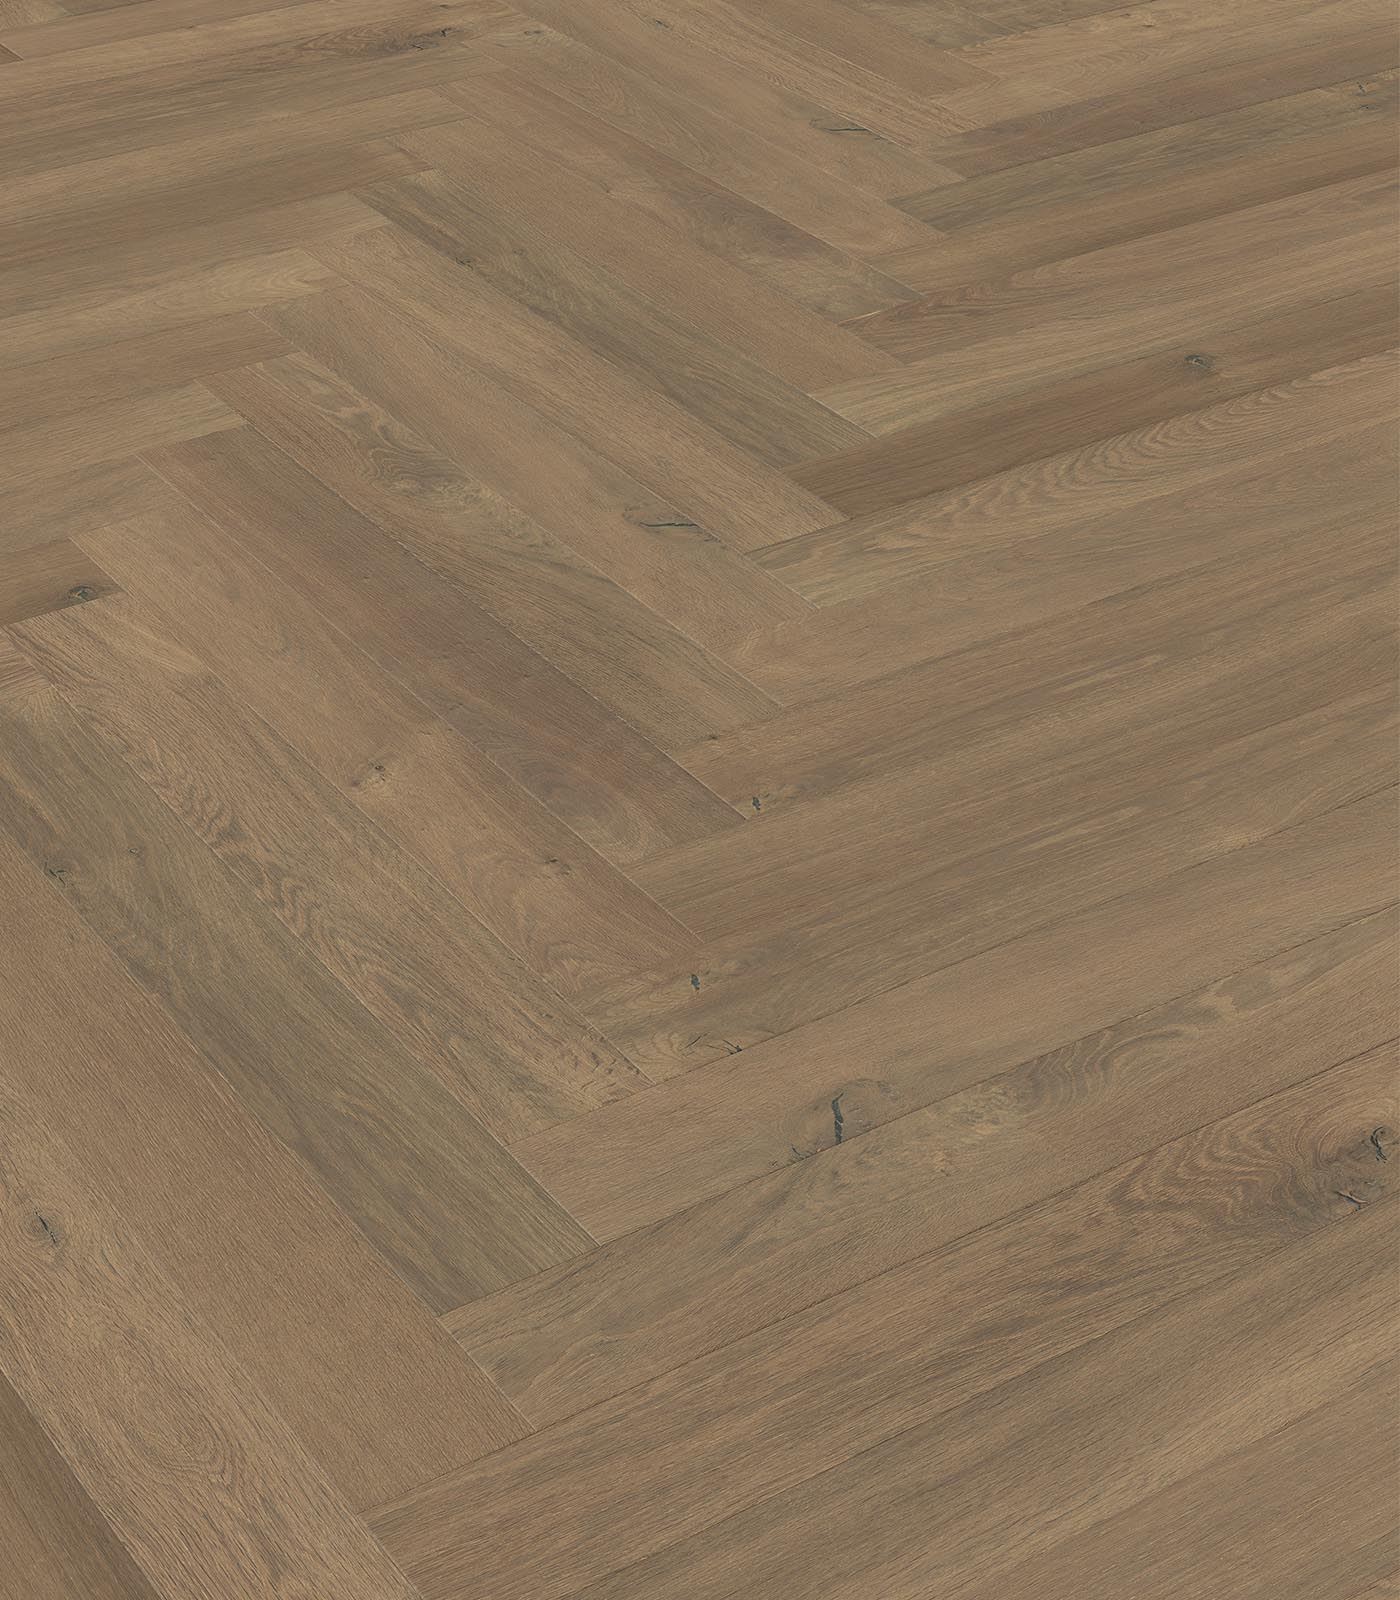 Fashion Collection-Verbier herringbone European Oak planks-Forestry Timber-angle